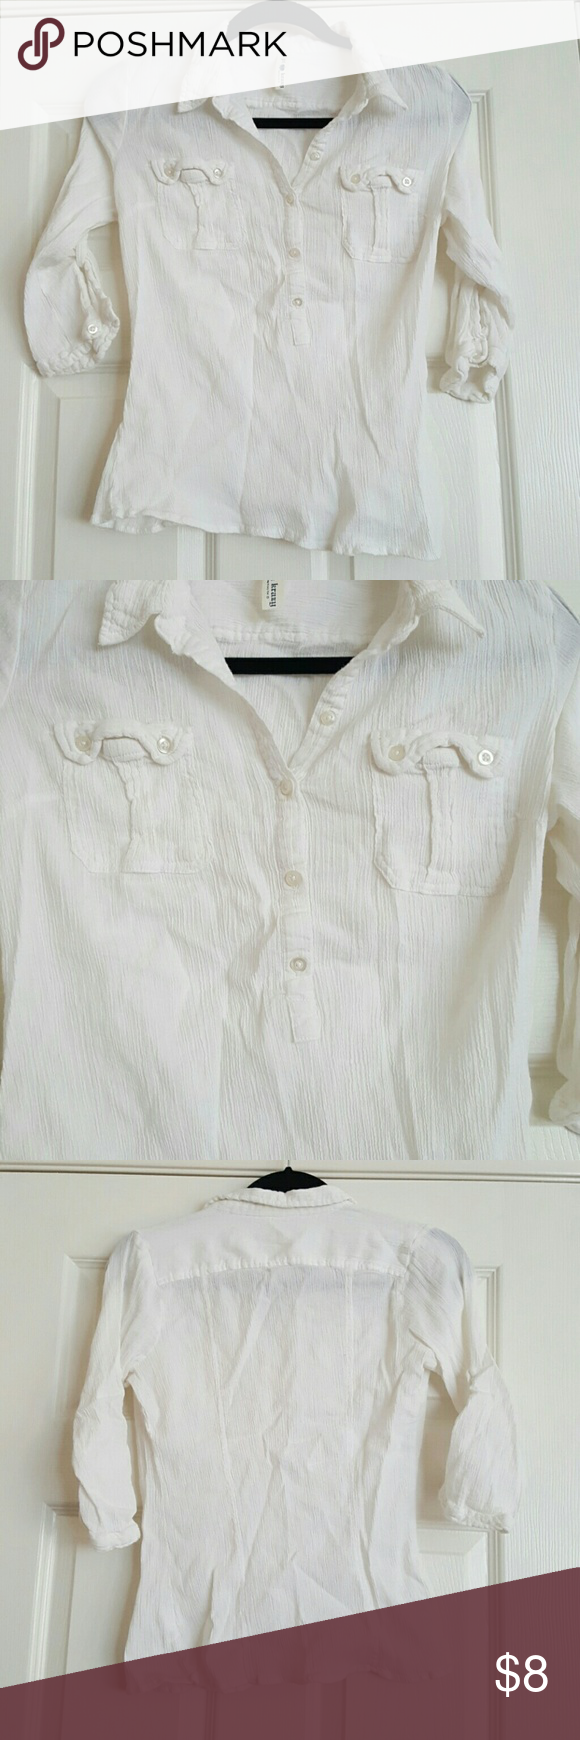 Sheer white half button up Beachy top! So cute and sheer. EUC. I ship same/next day. Ask any questions!! Vintage  Tops